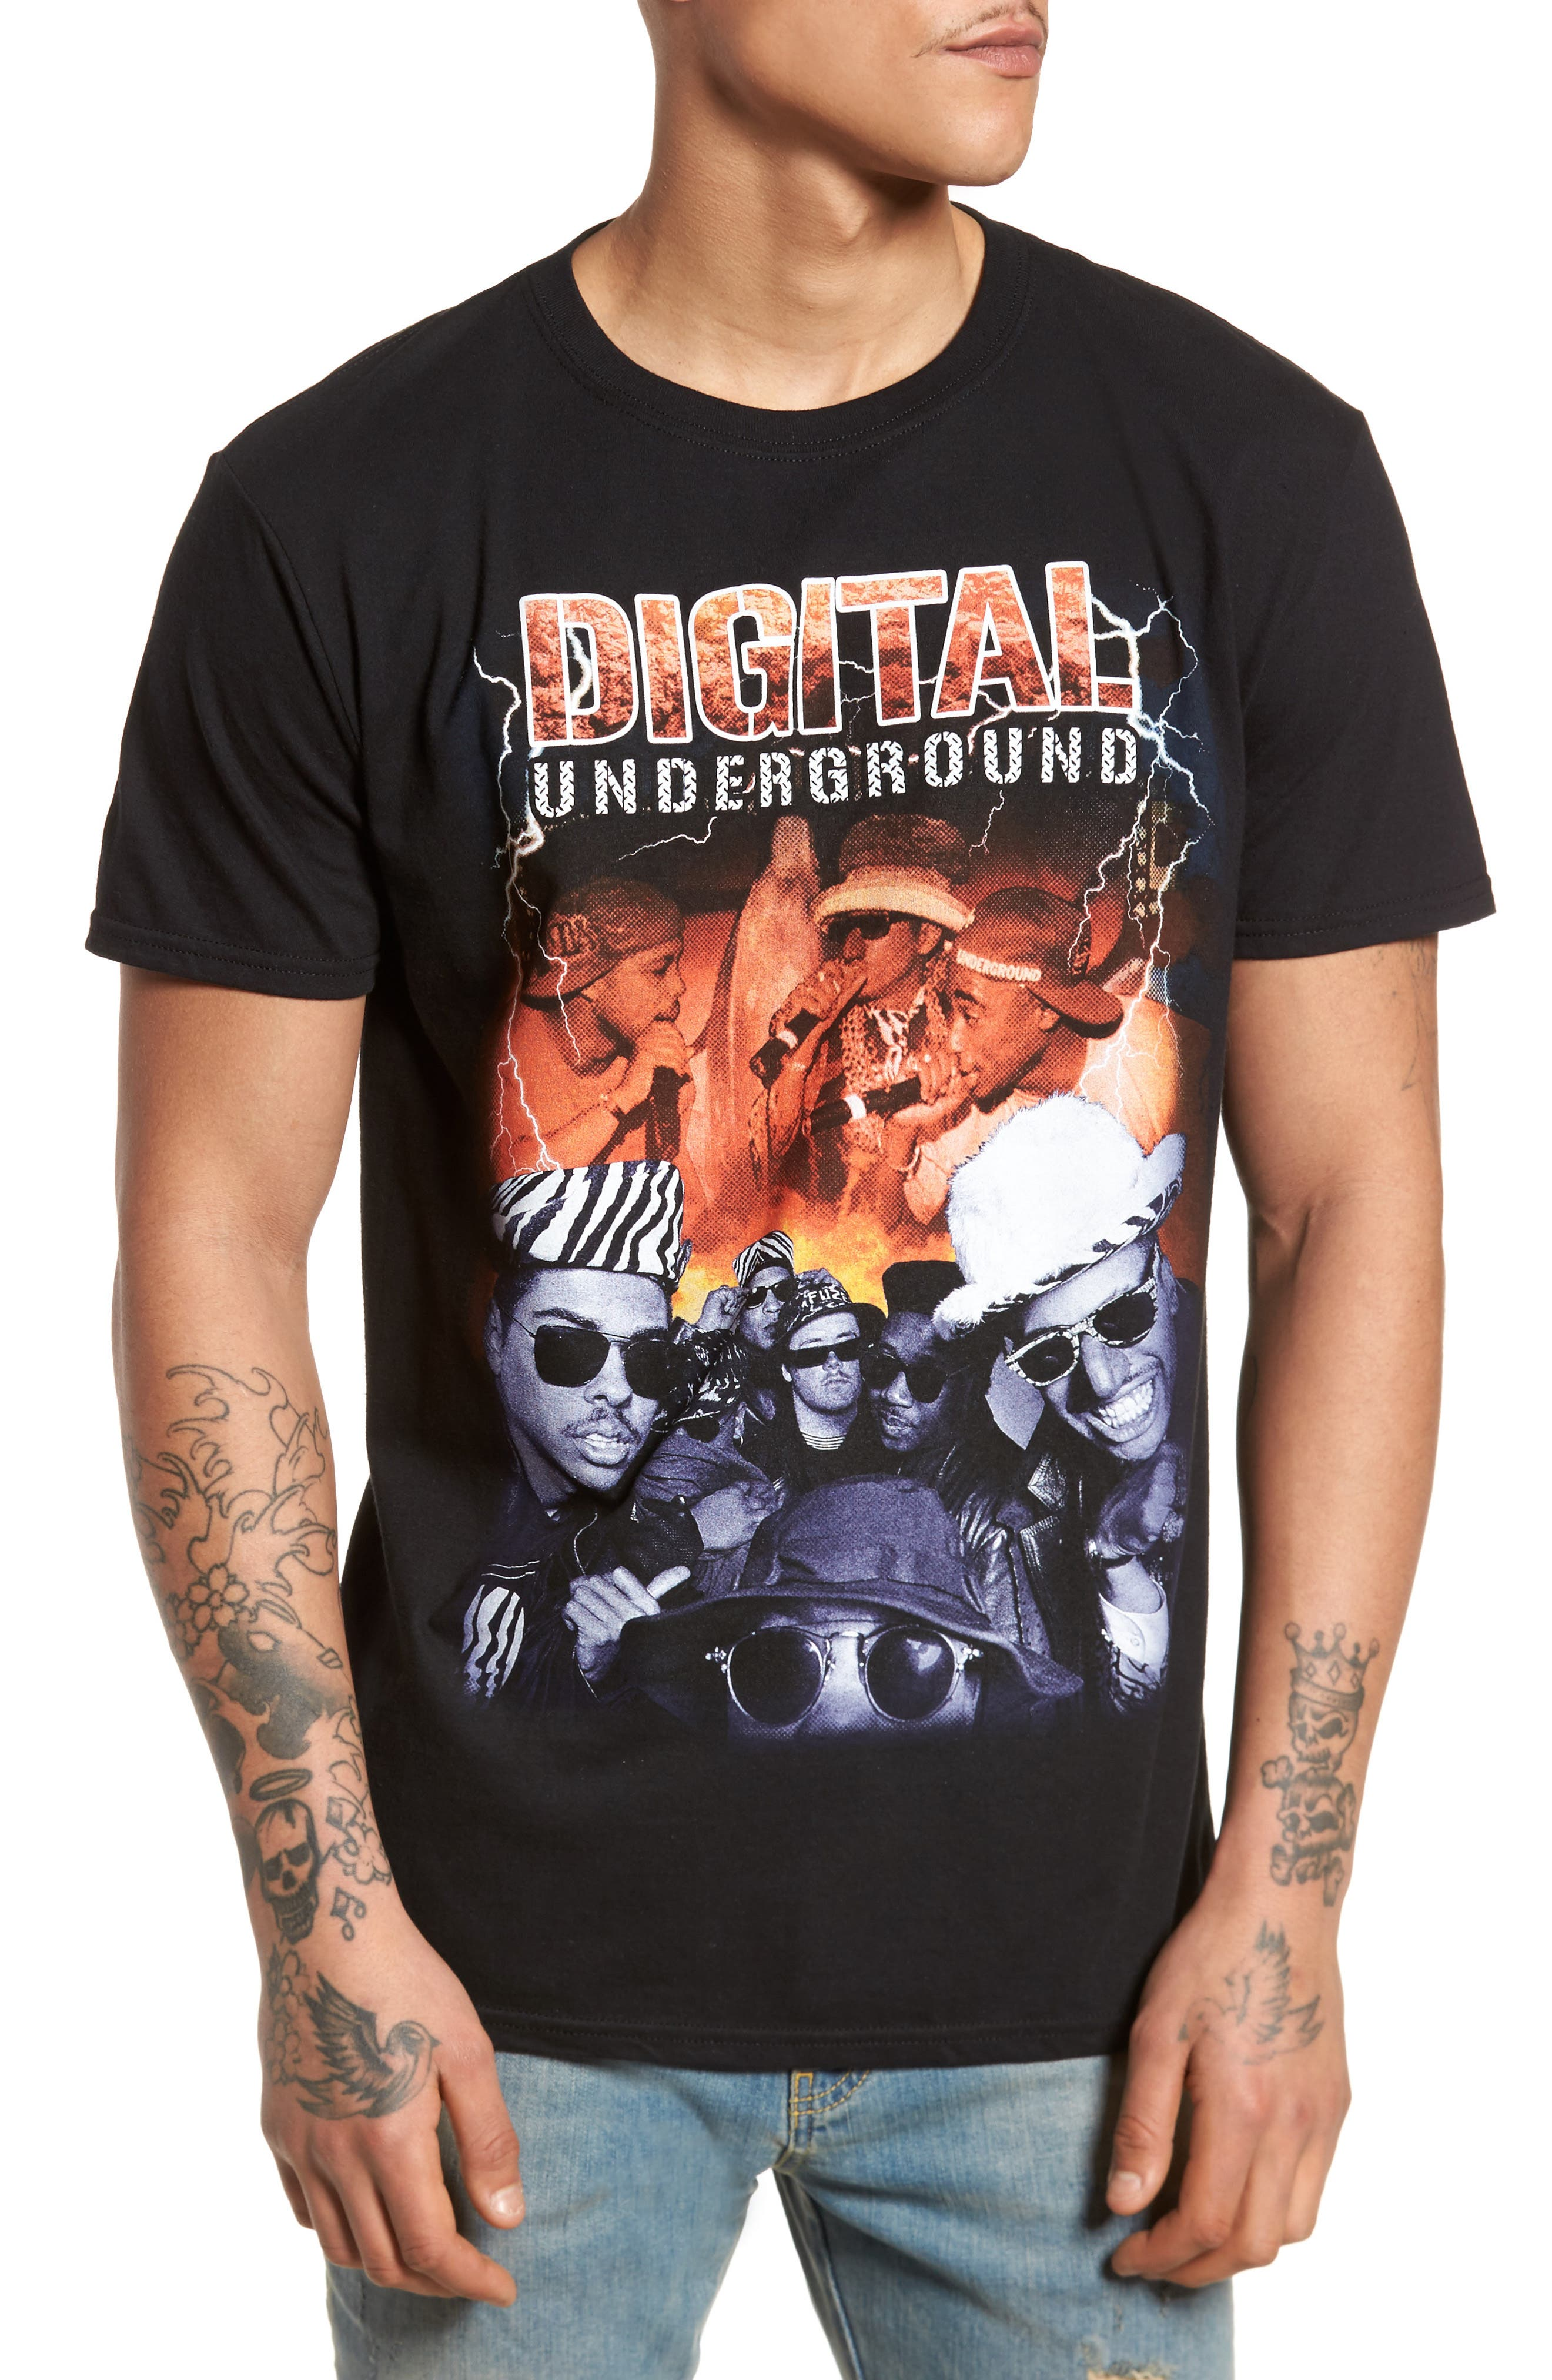 Alternate Image 1 Selected - The Rail Digital Underground Graphic T-Shirt